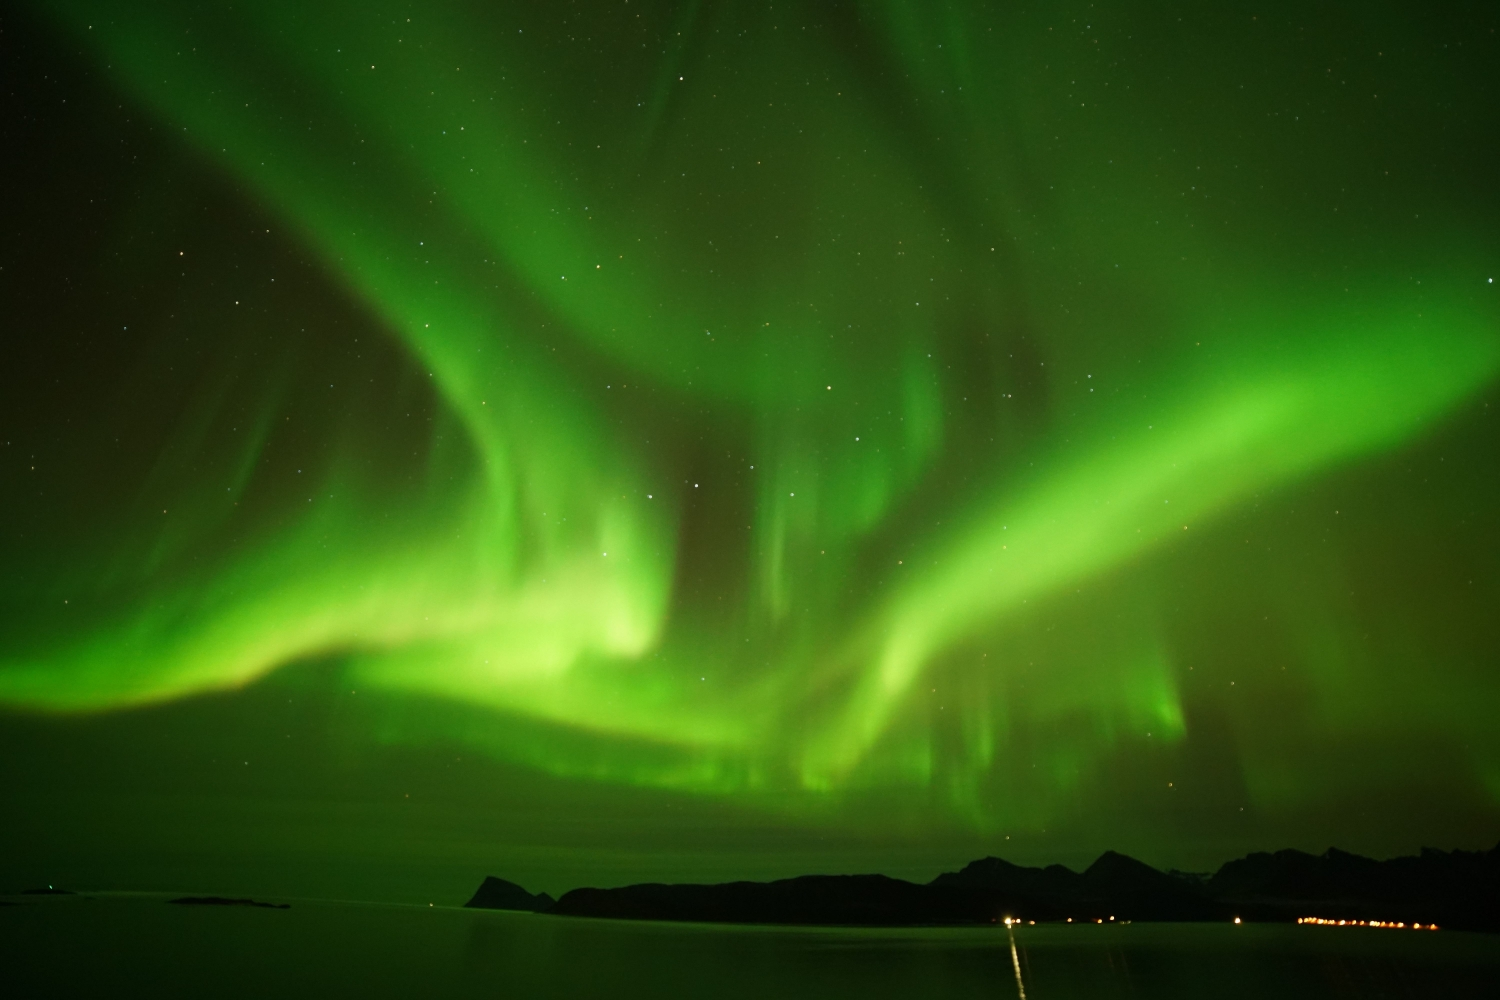 Nordlys over havet